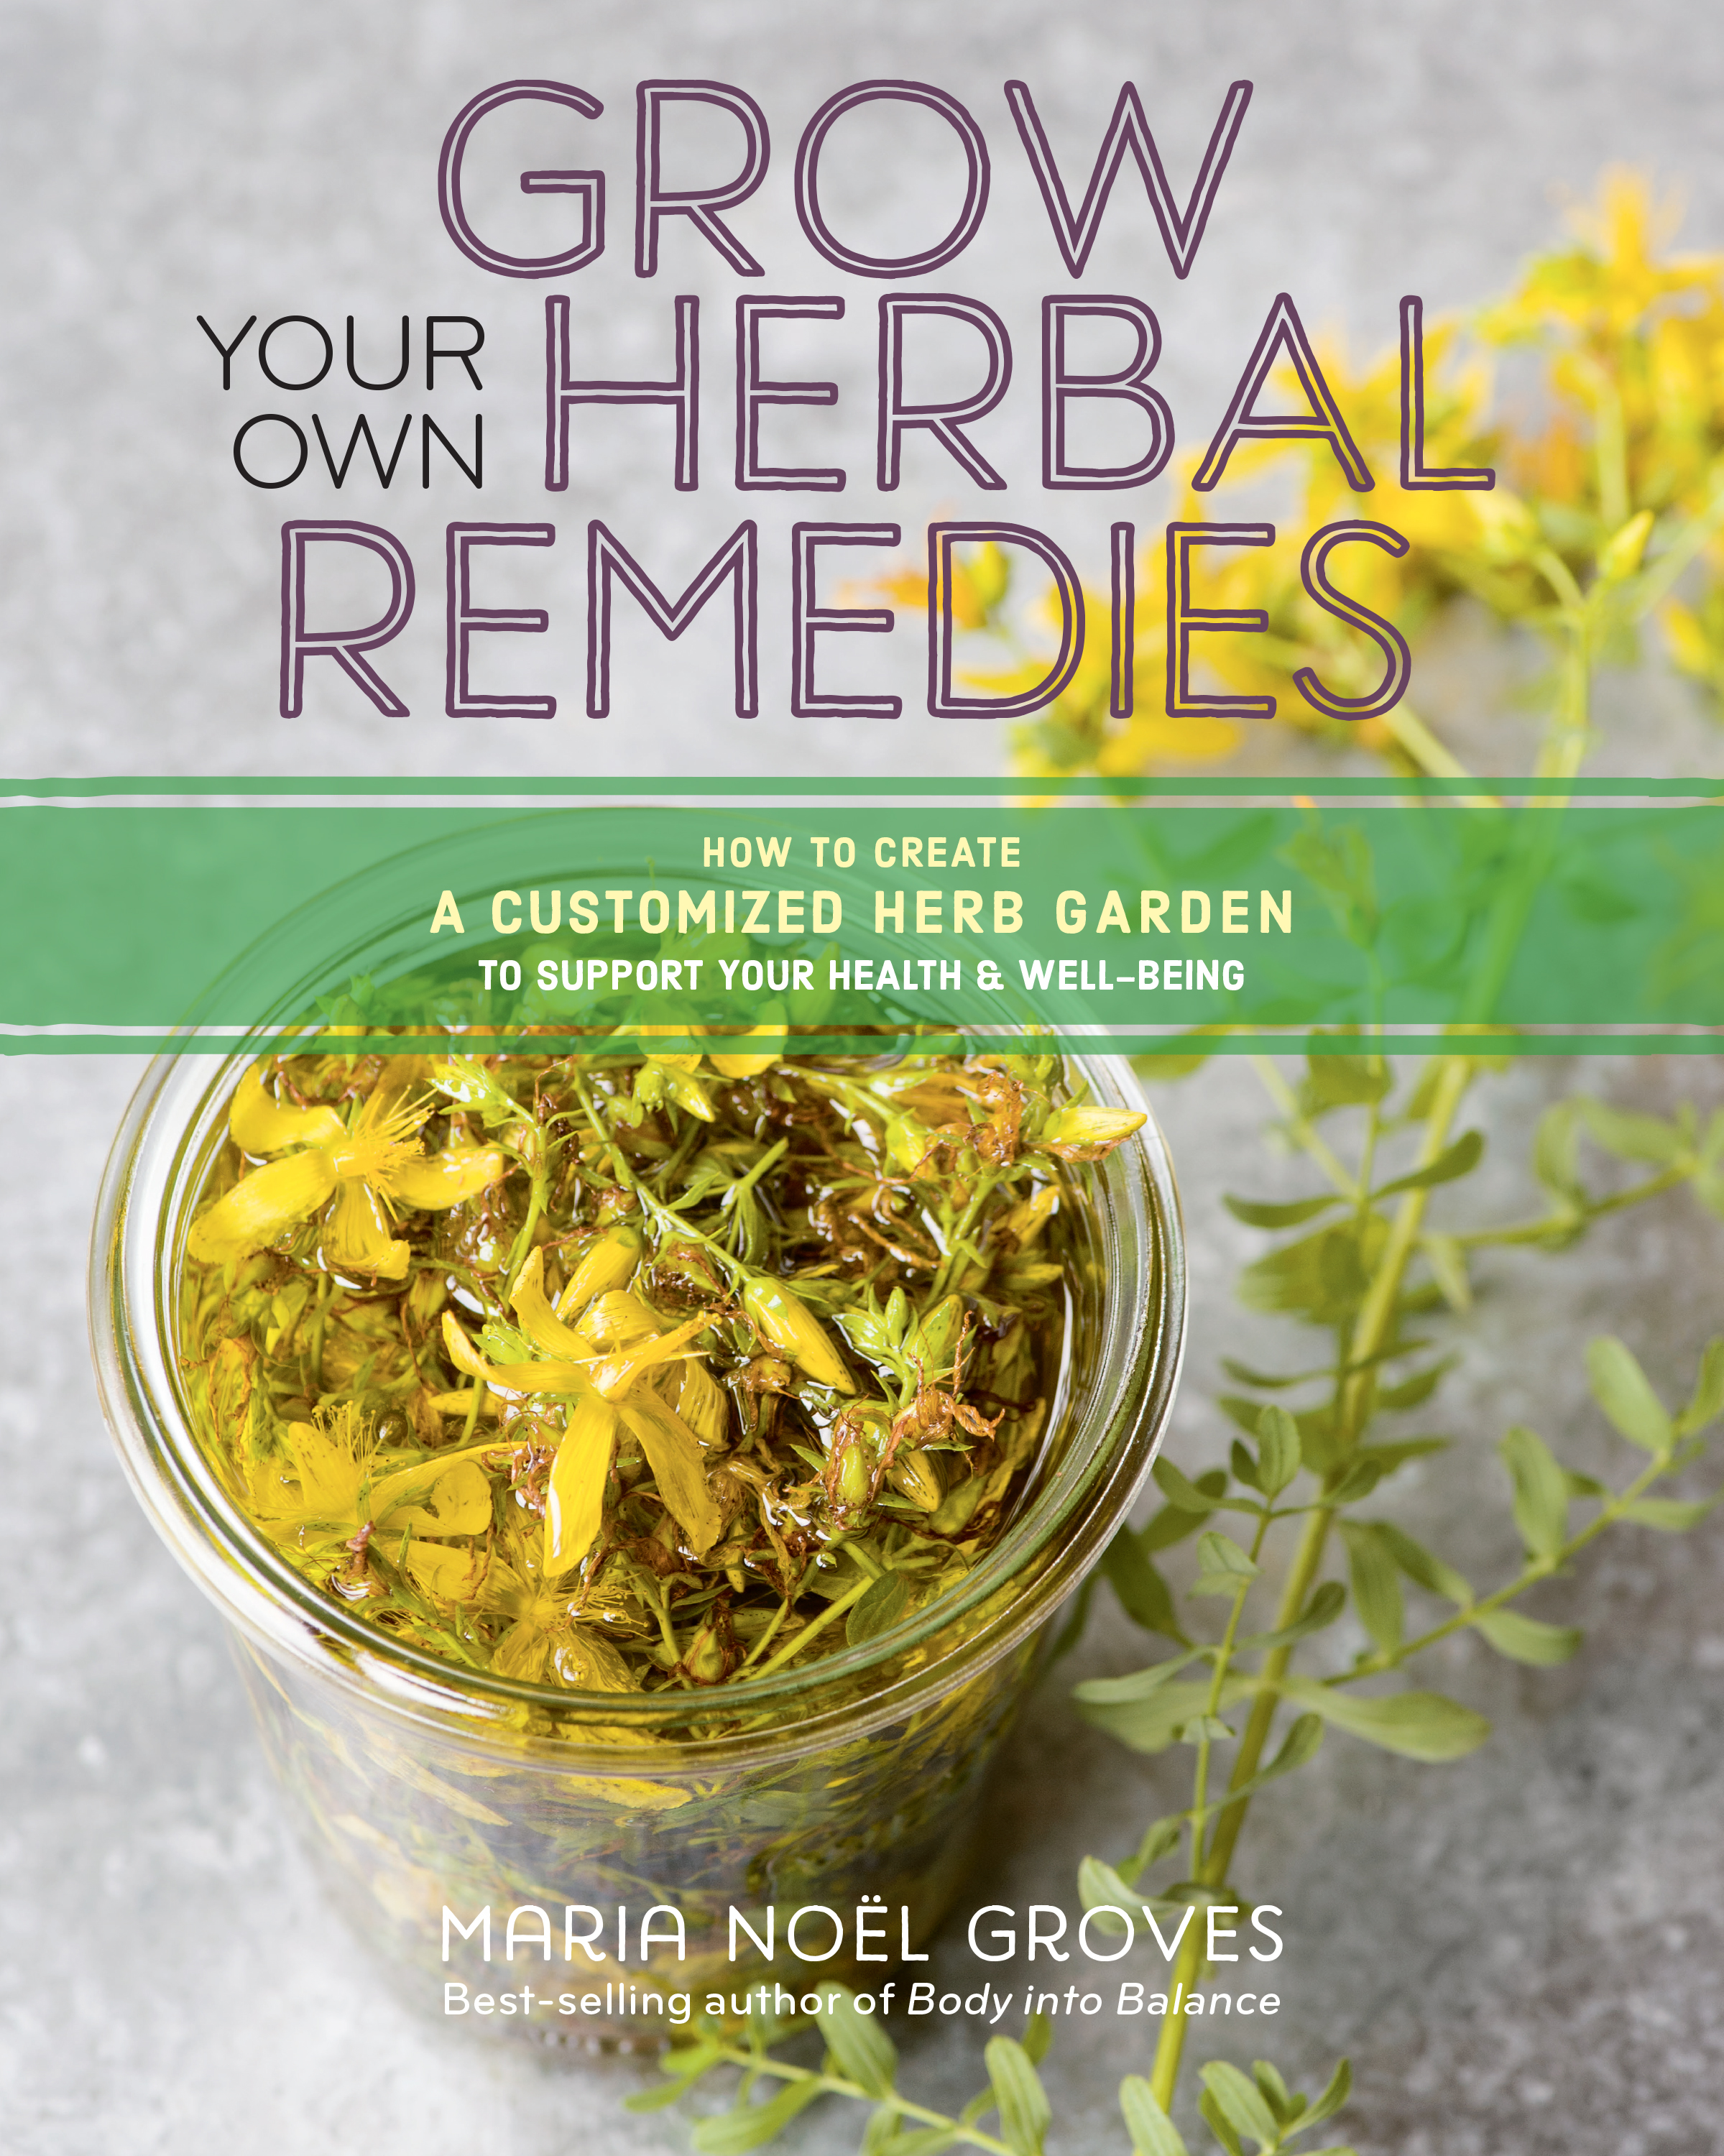 Grow Your Own Herbal Remedies How to Create a Customized Herb Garden to Support Your Health & Well-Being - Maria Noël Groves